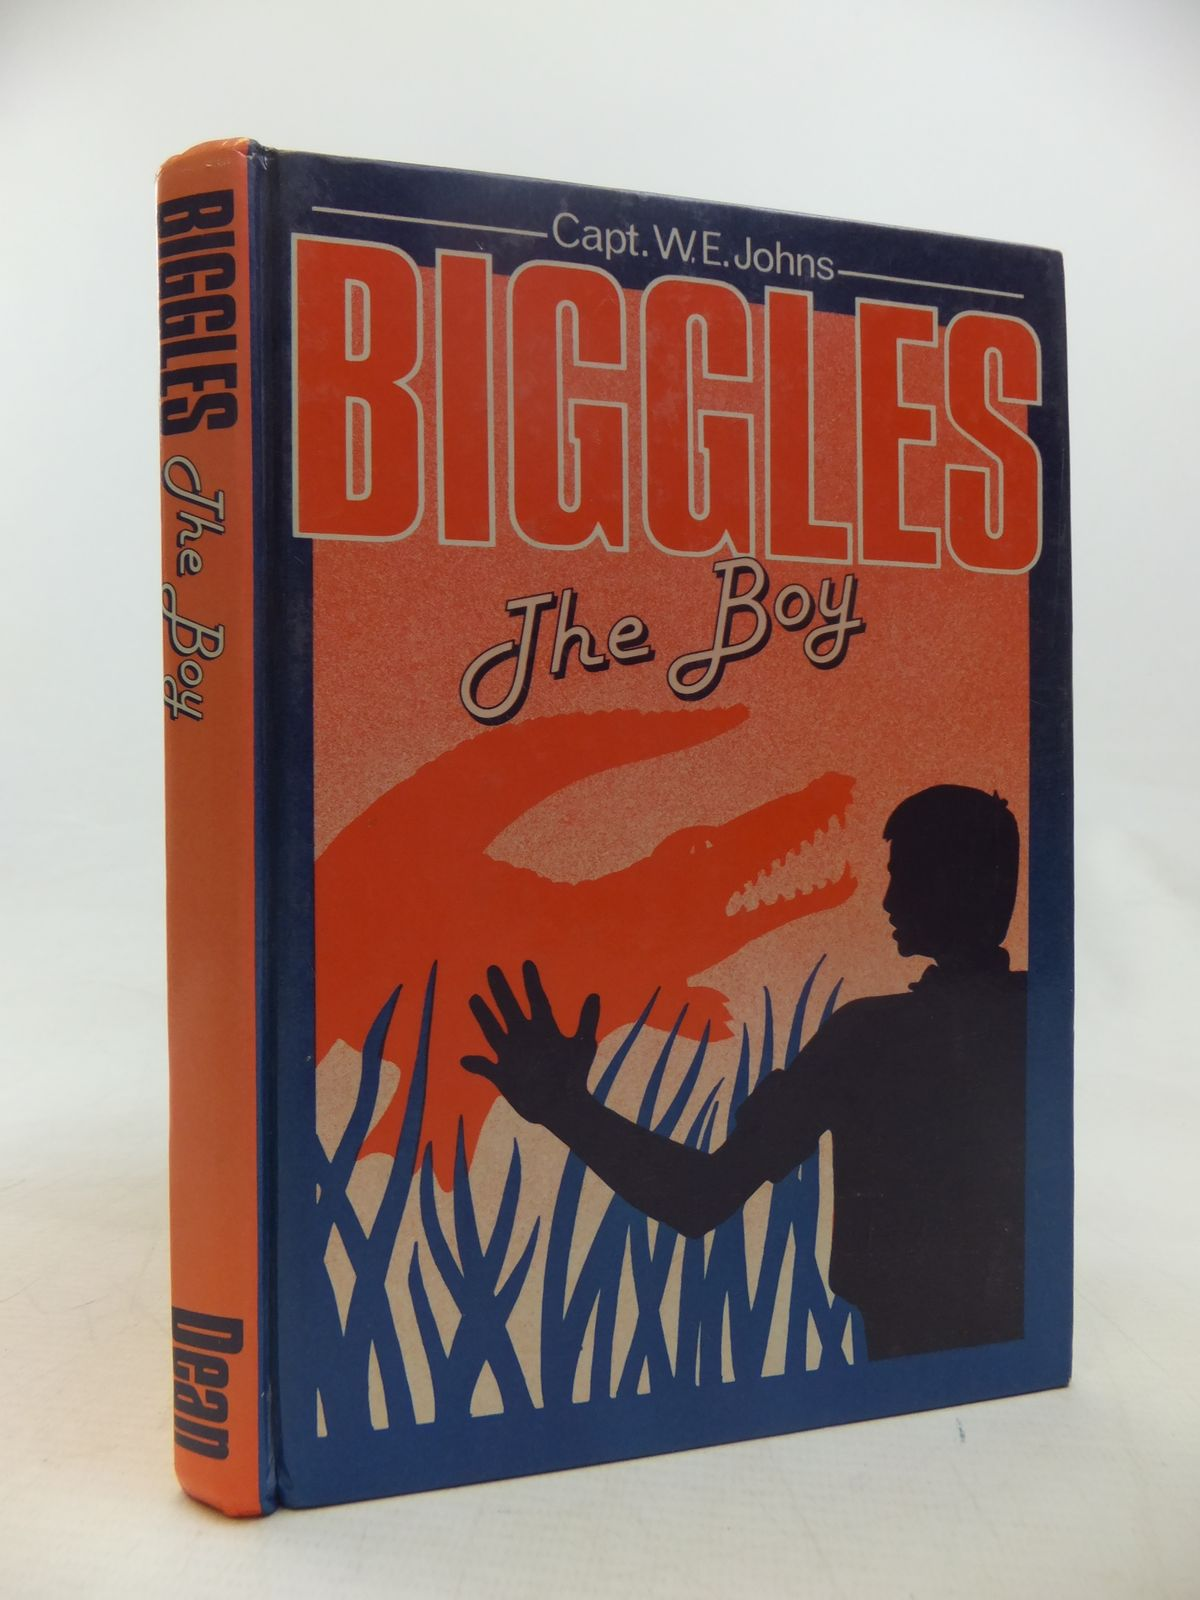 Photo of THE BOY BIGGLES written by Johns, W.E. published by Deans International Publishing (STOCK CODE: 2118079)  for sale by Stella & Rose's Books